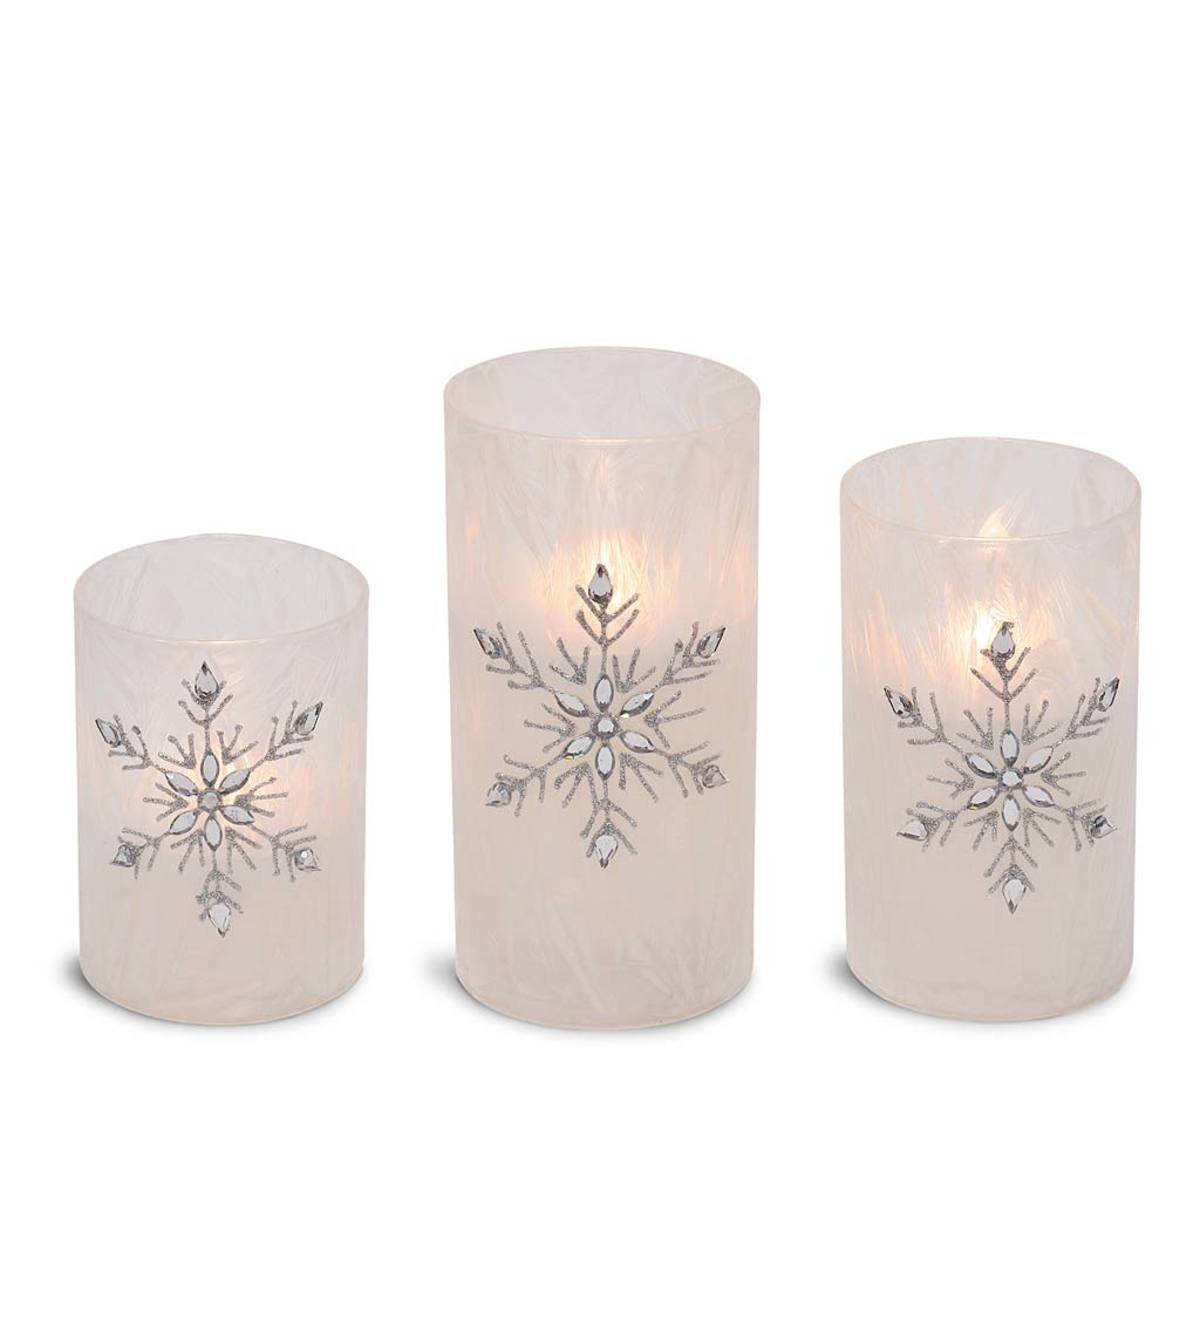 Flameless LED Glass Snowflake Candles, Set of 3